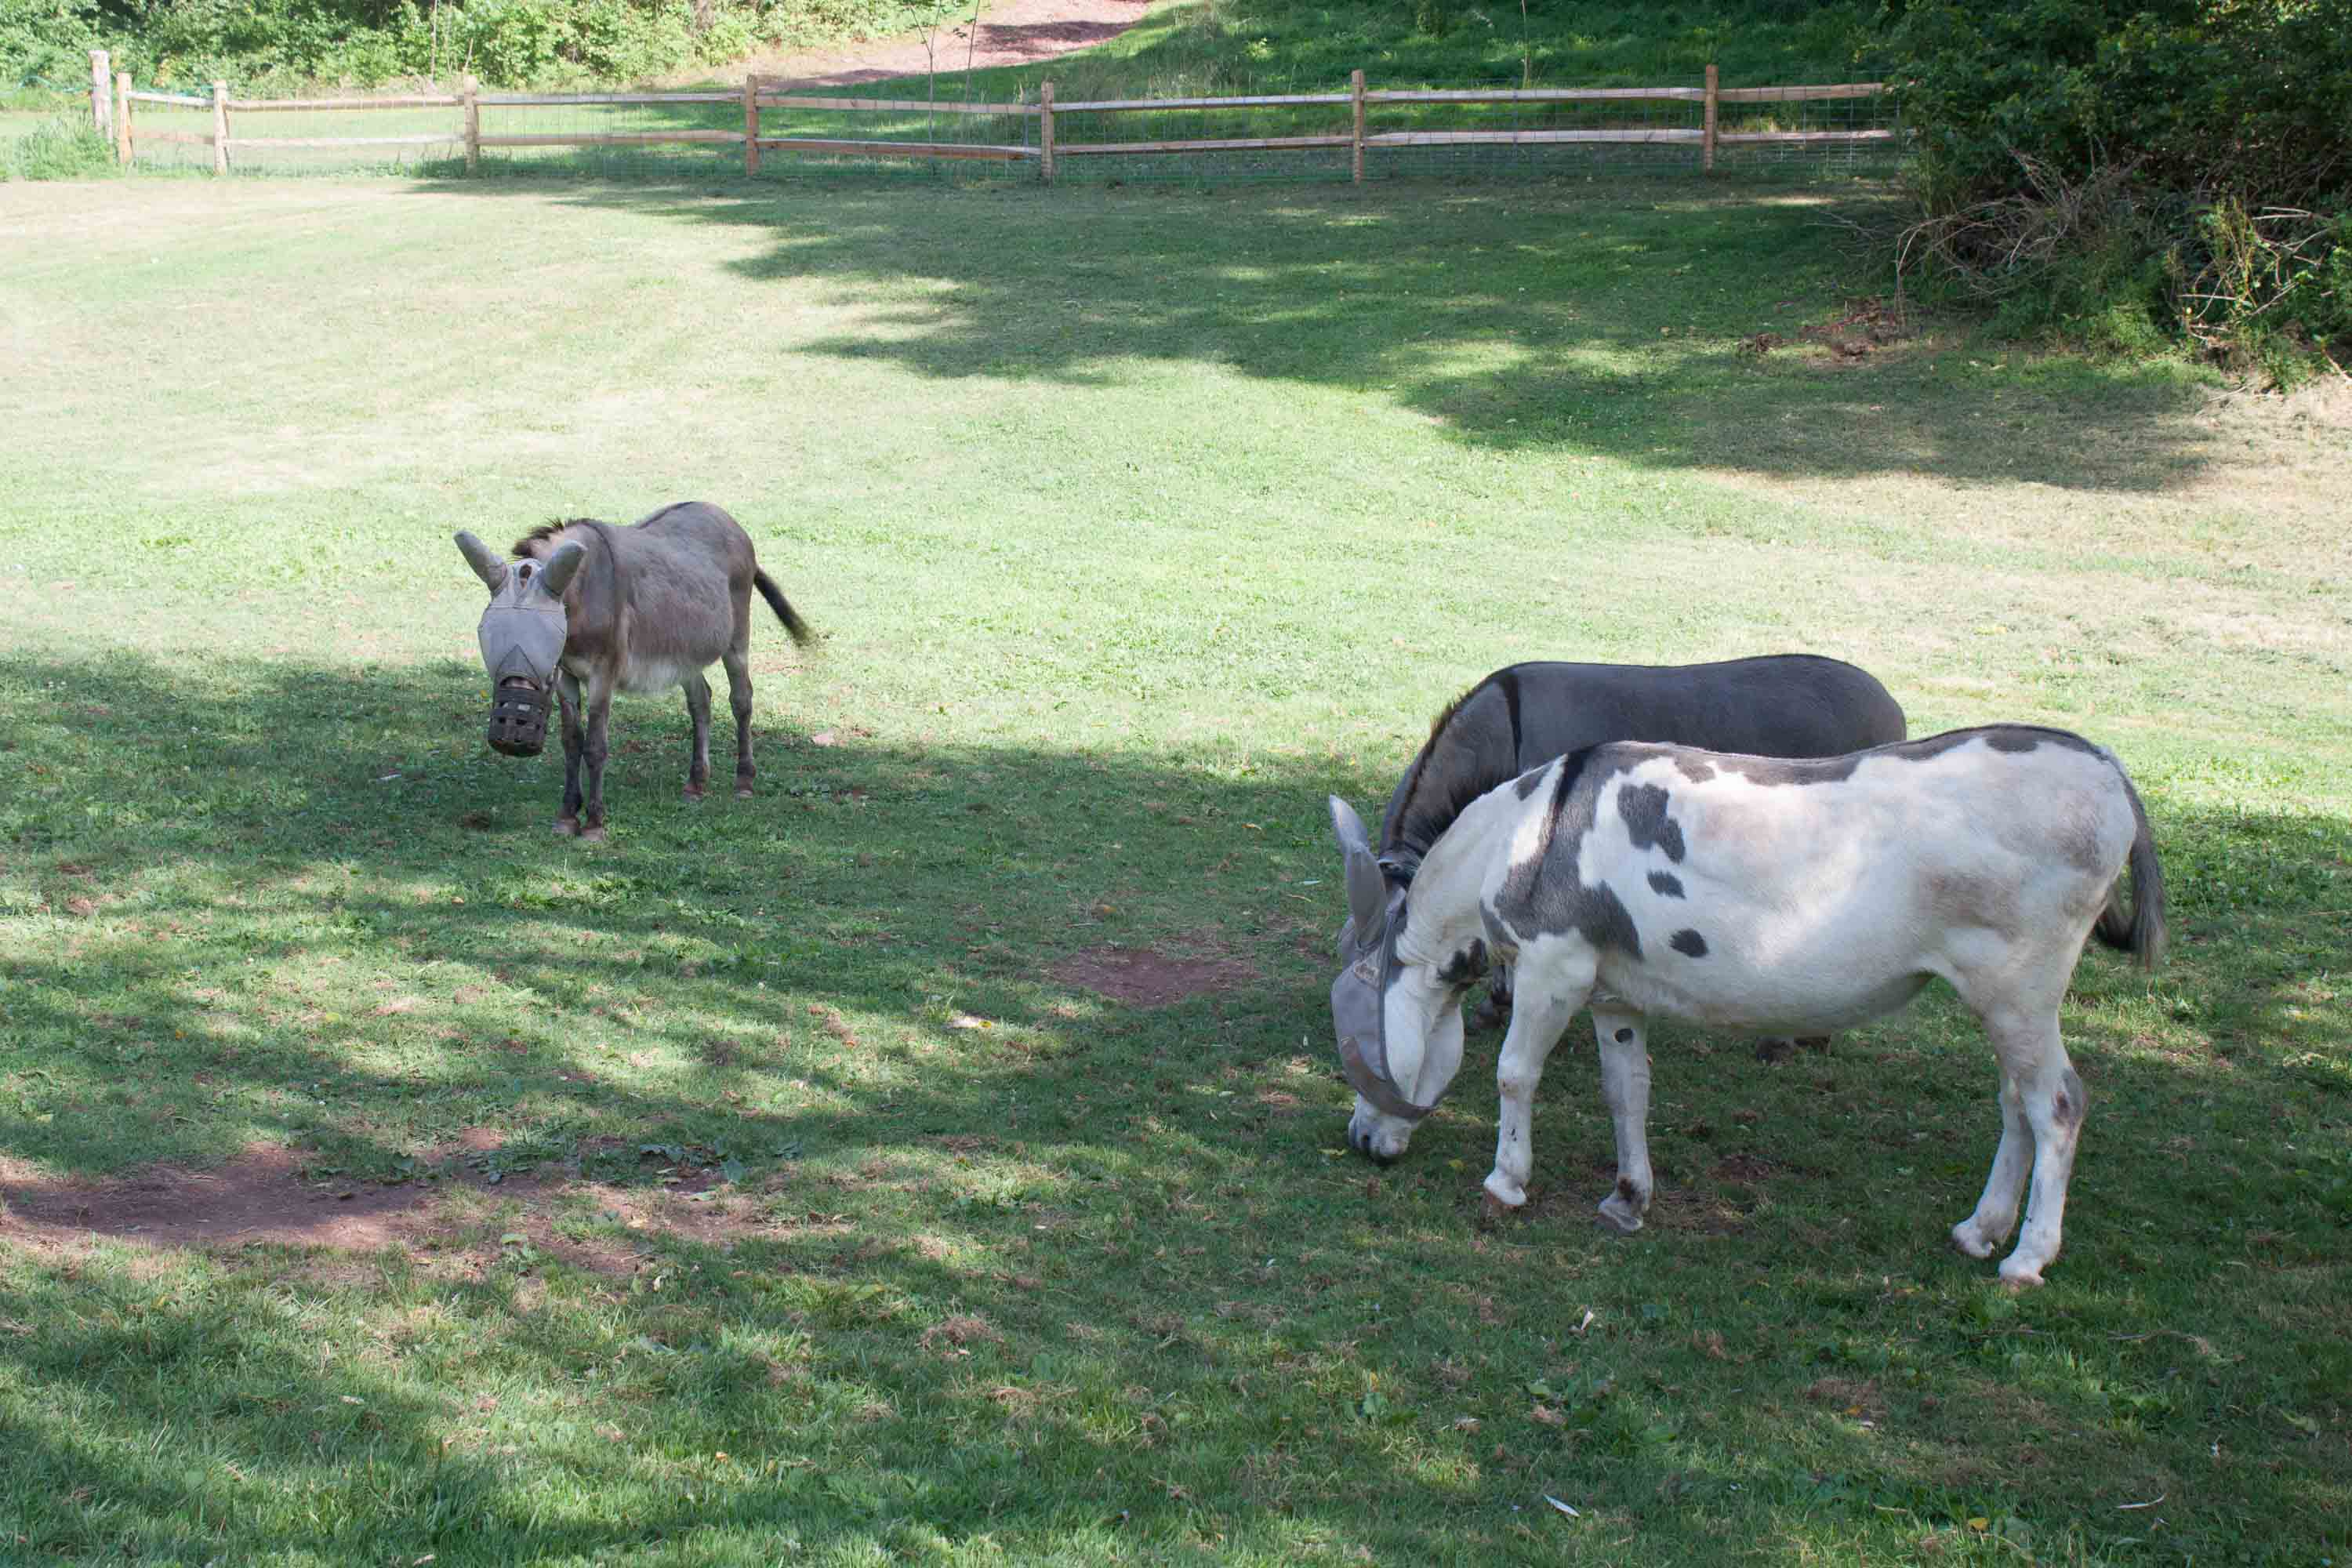 Pepita, Cheyenne, and Flower are our three miniature donkeys. They enjoy grazing in the Lower Fields.